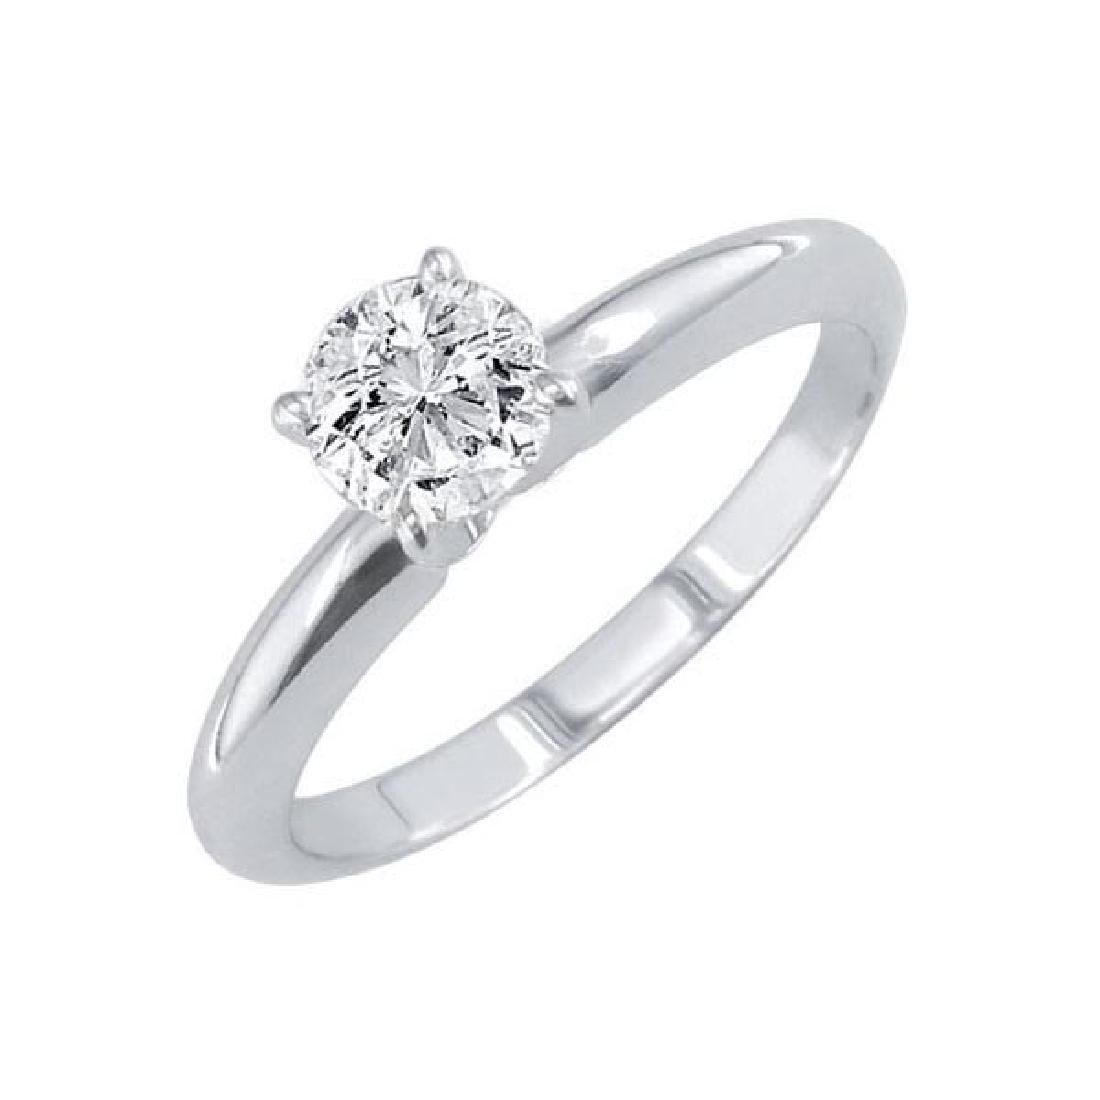 Certified 1 CTW Round Diamond Solitaire 14k Ring D/SI2